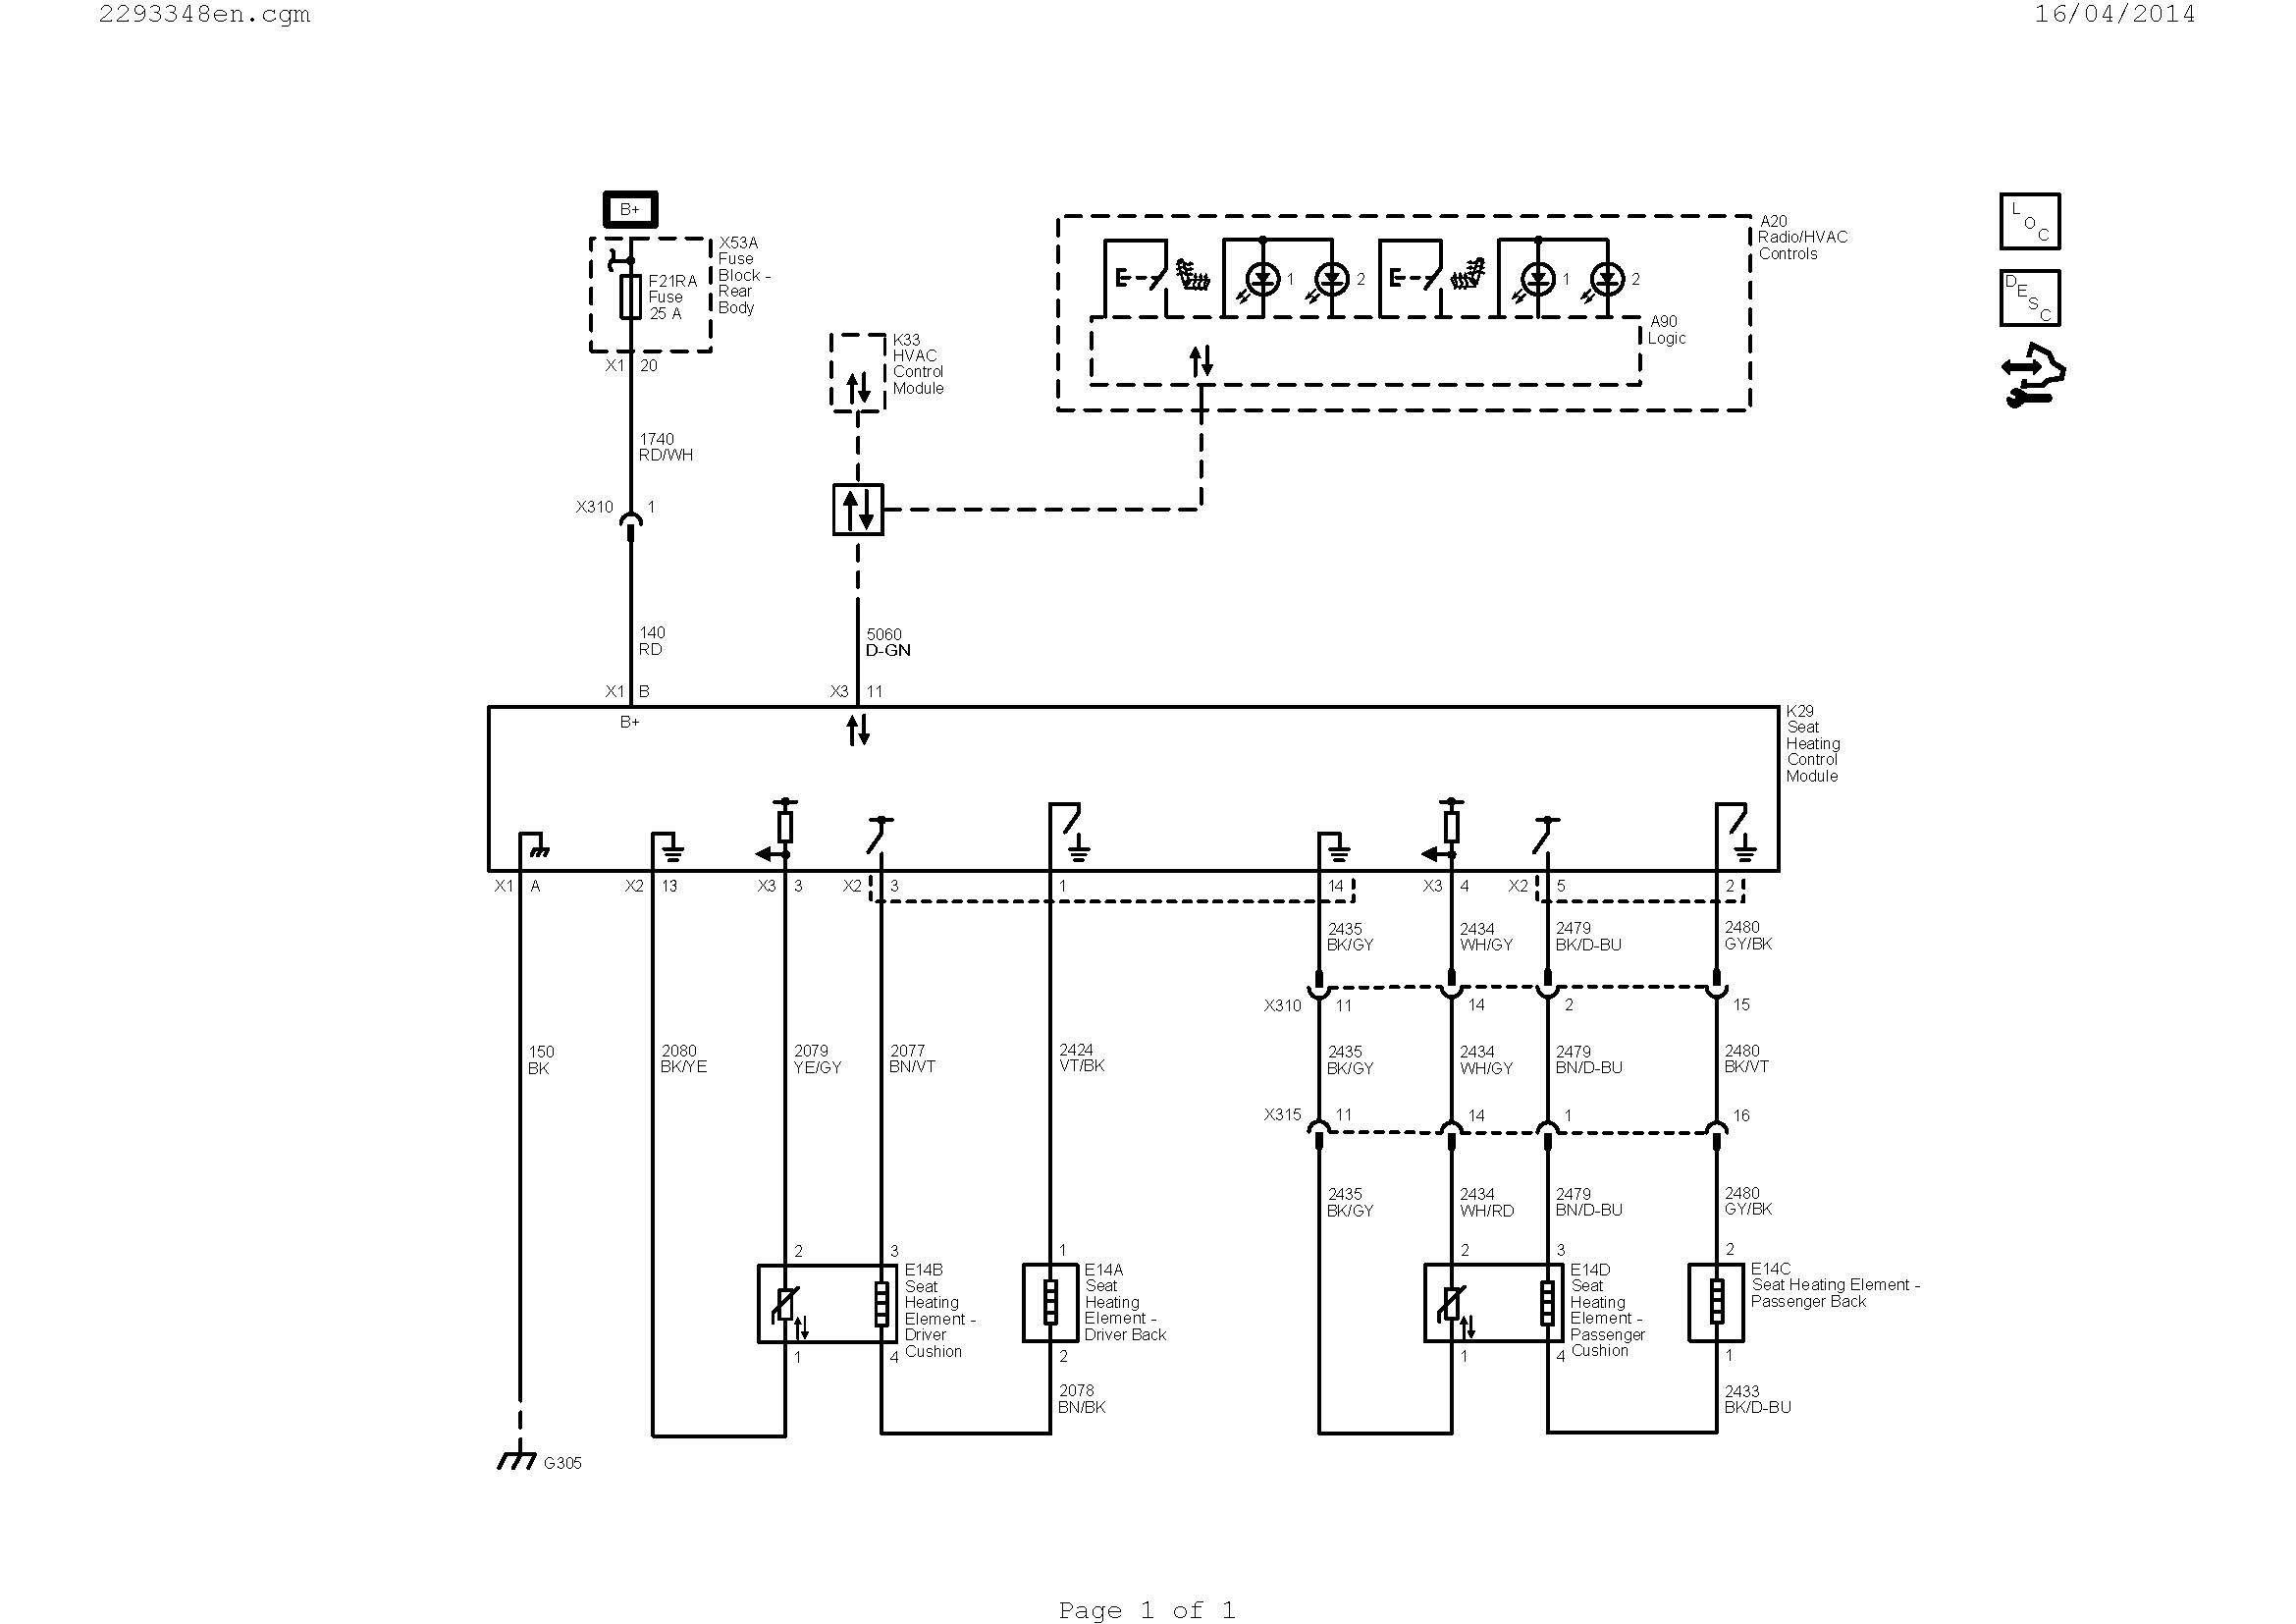 central boiler thermostat wiring diagram Download-Central Heating thermostat Wiring Diagram Central Boiler thermostat Wiring Diagram Download Wiring Diagrams for Central 15-m